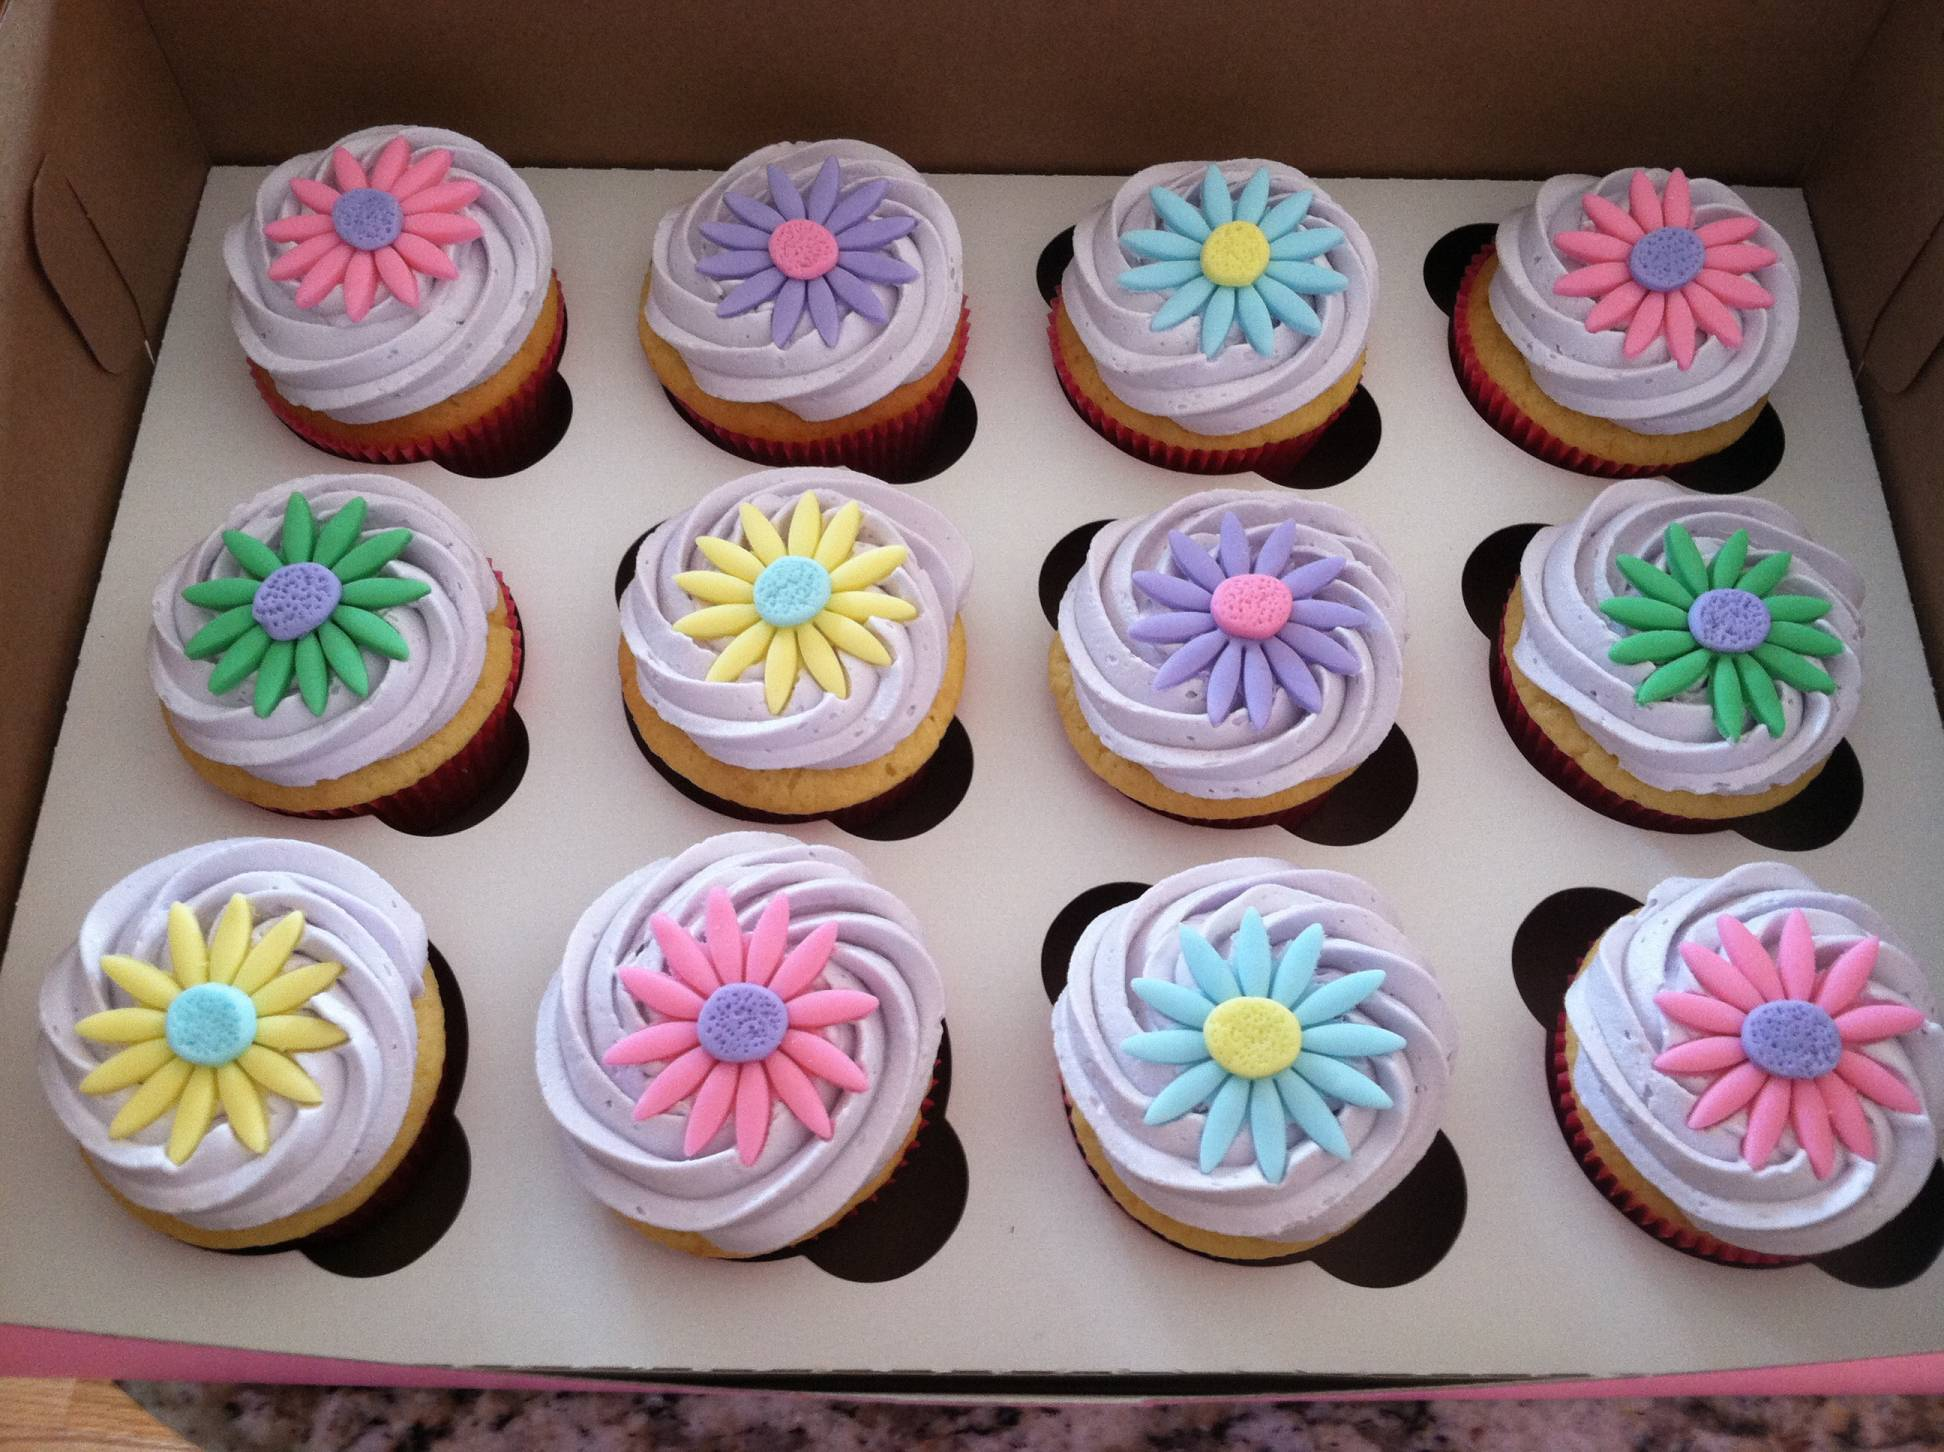 12 Cute Ideas For Frosting Cupcakes Photo Cupcakes On Cupcakes